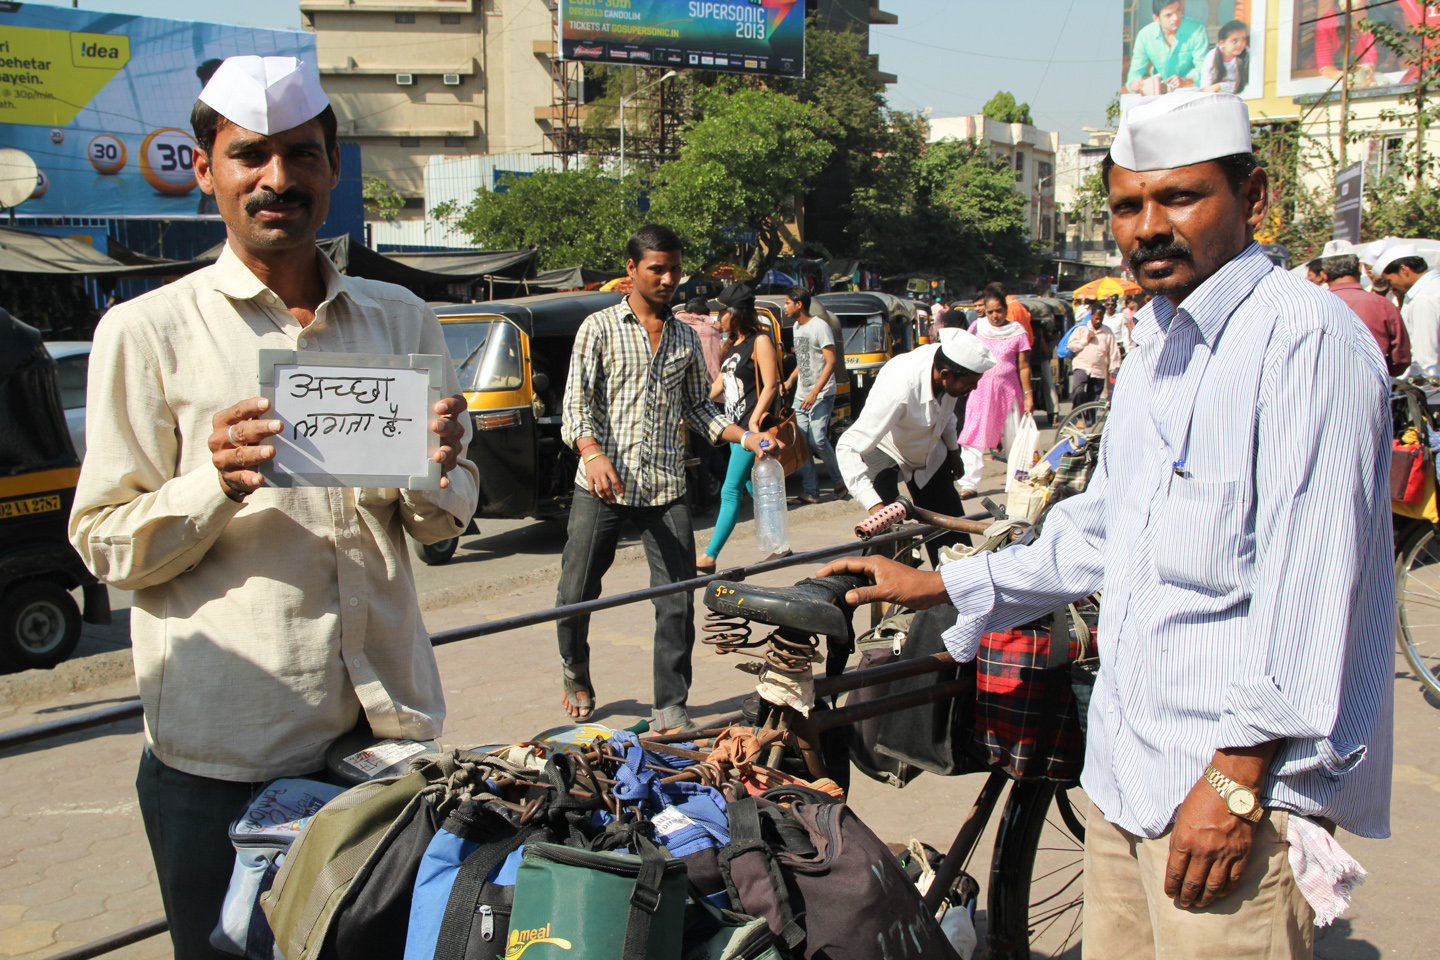 Shivaji has worked as one of Mumbai's legendary dabbawalas for twenty years, transporting homecooked meals to office workers around the city. He delivers lunches to some of the 400,000 employees of Bandra Kurla Complex, a sprawling collection of commercial and government buildings. Tea gives him the energy to make the rounds on his bicycle.